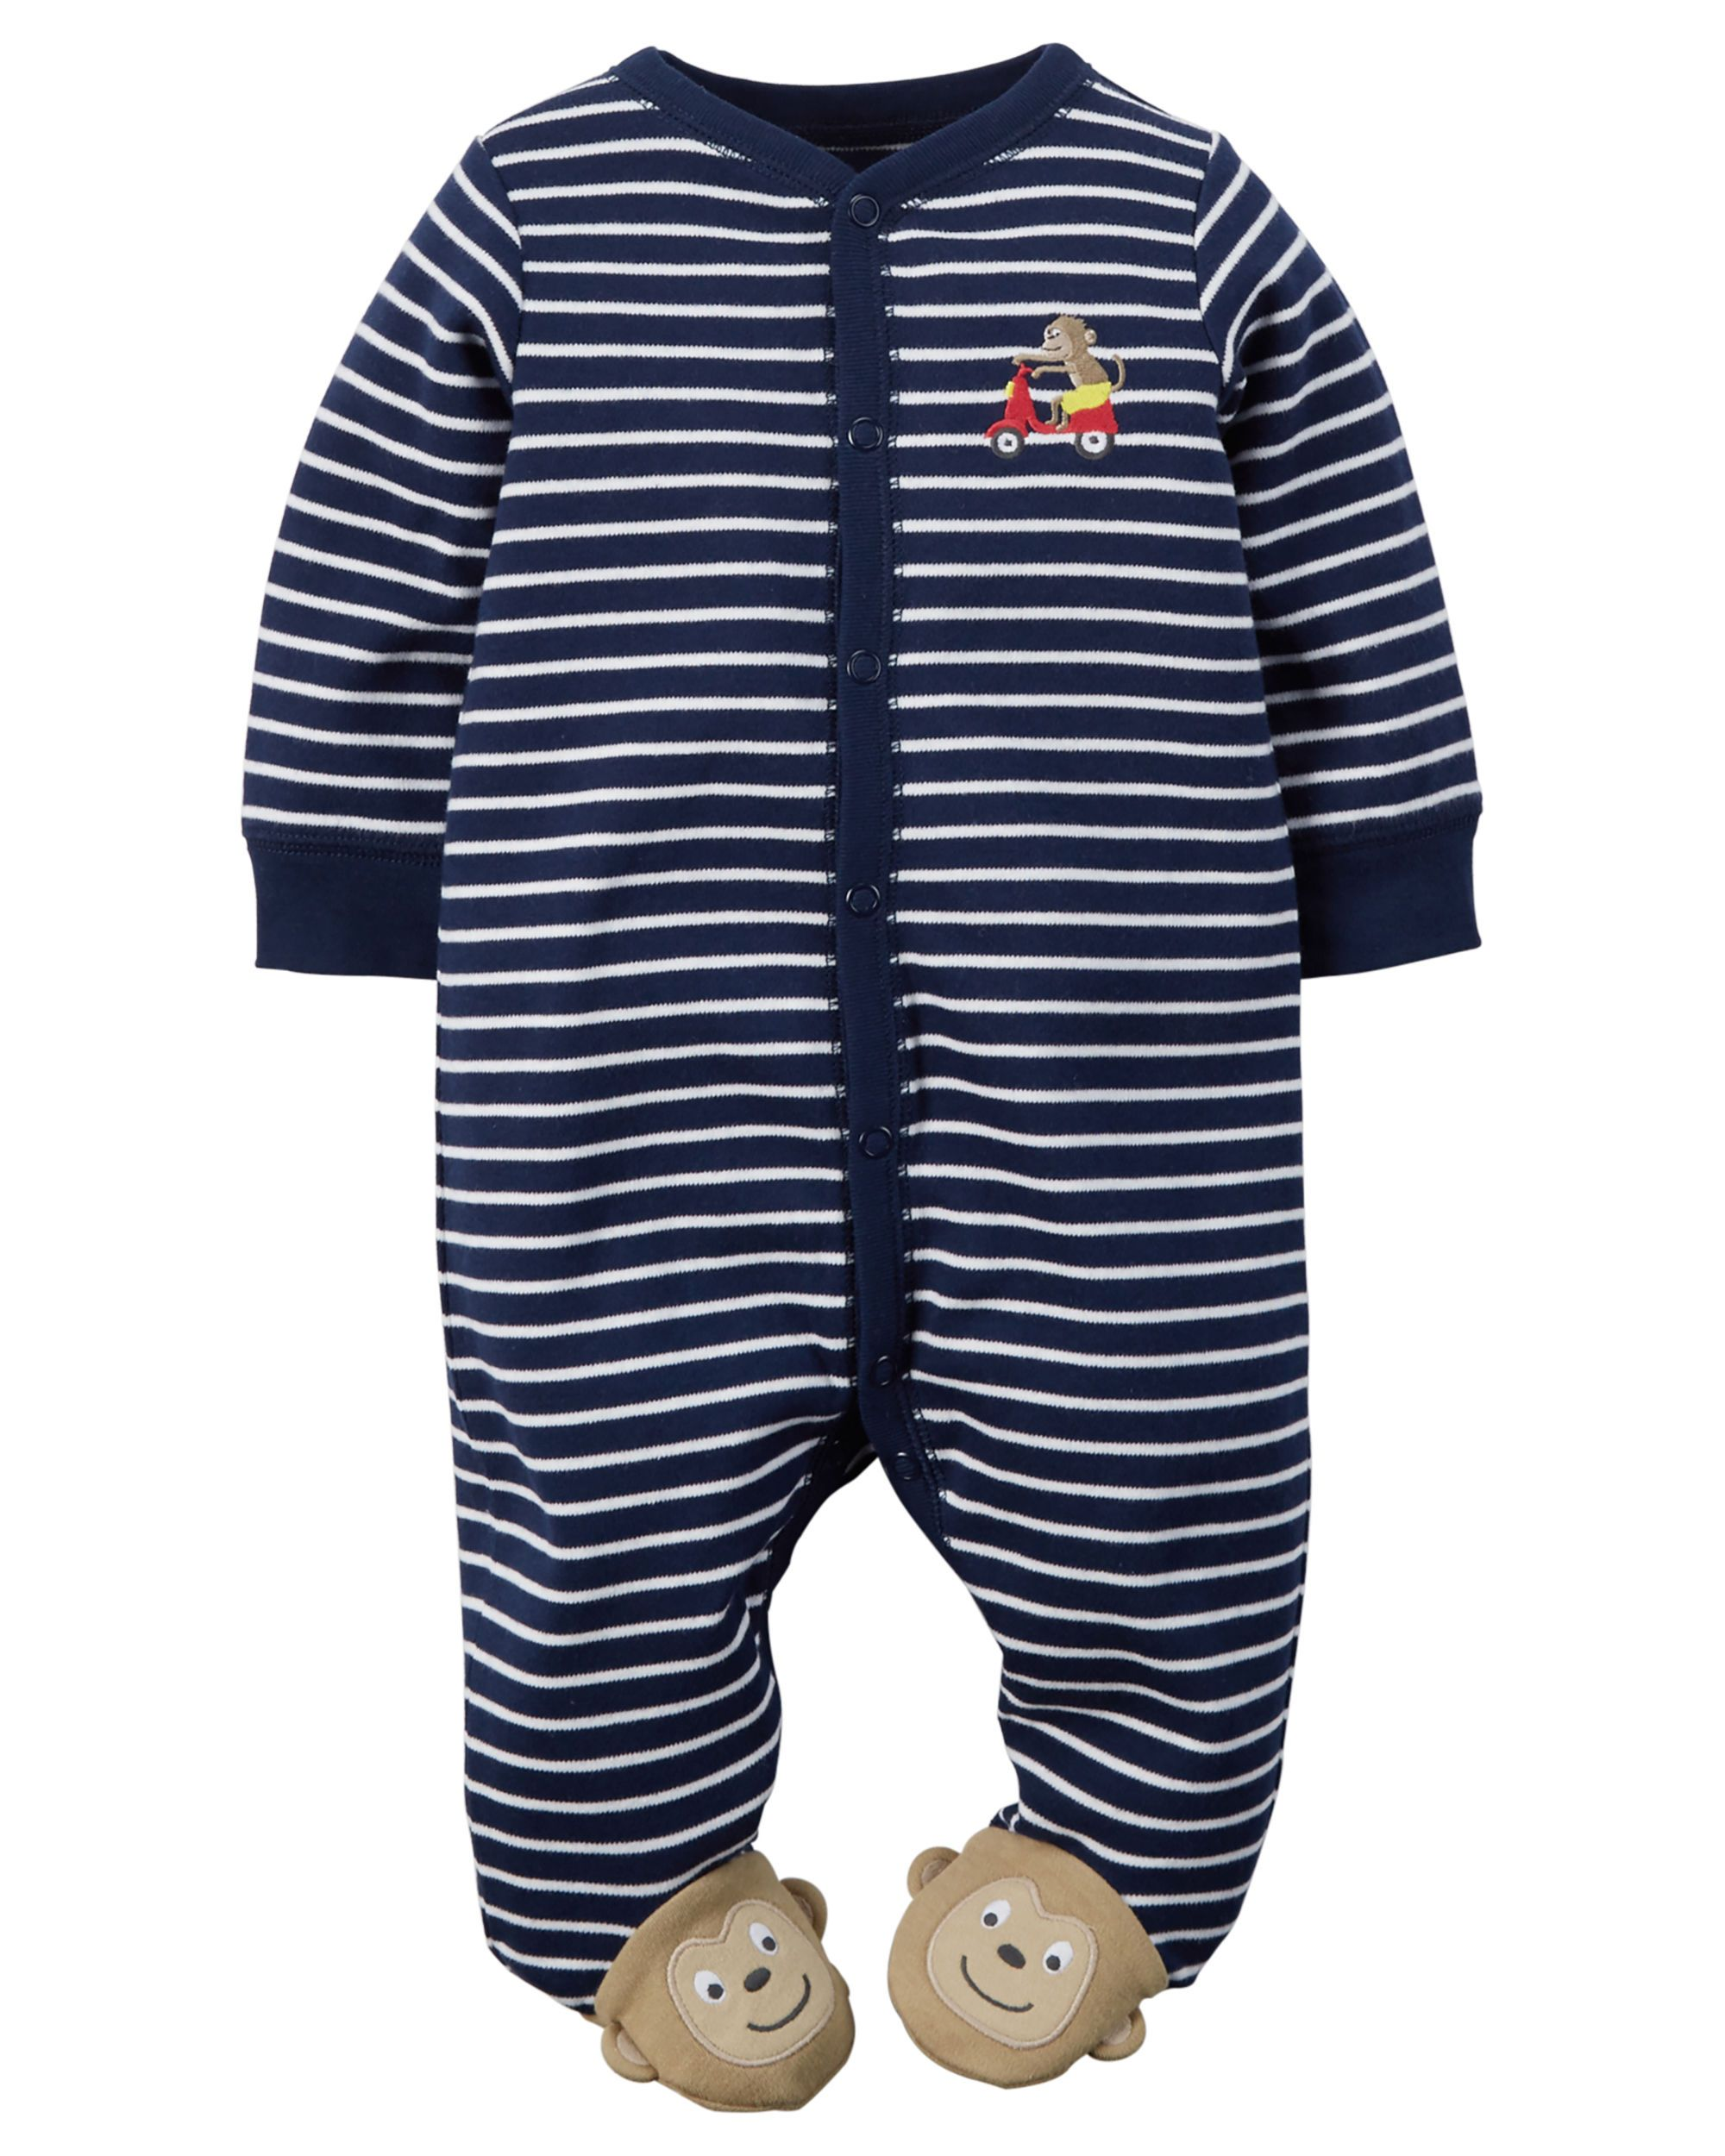 64465e260 Baby Boy Cotton Snap-Up Sleep   Play